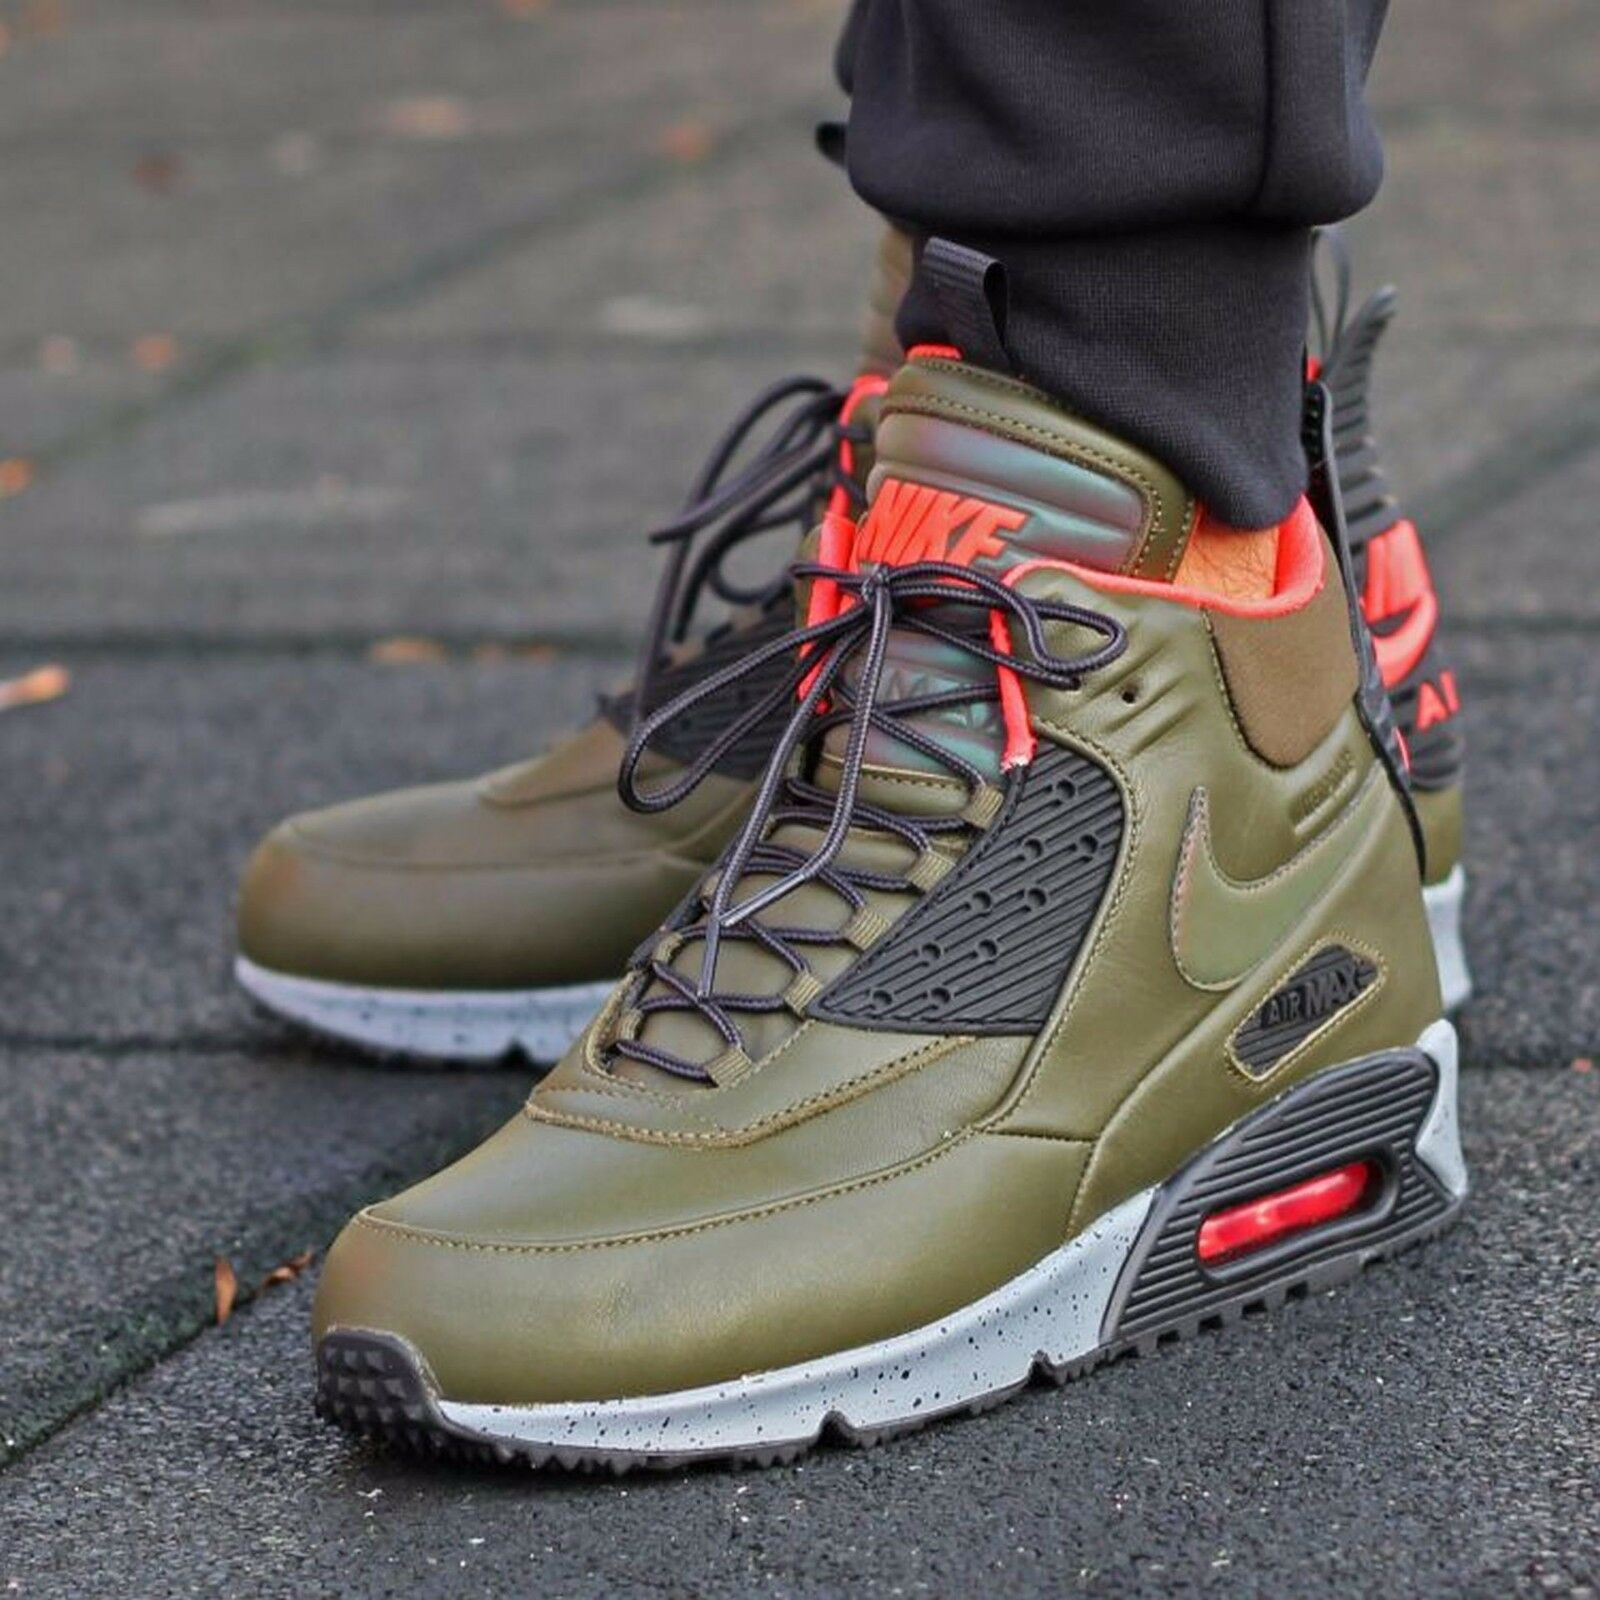 best loved 4d7d6 011eb hot sale 2017 NIKE Air Max 90 Sneakerboot Mens Shoes Sz 9 684714-300 Dark